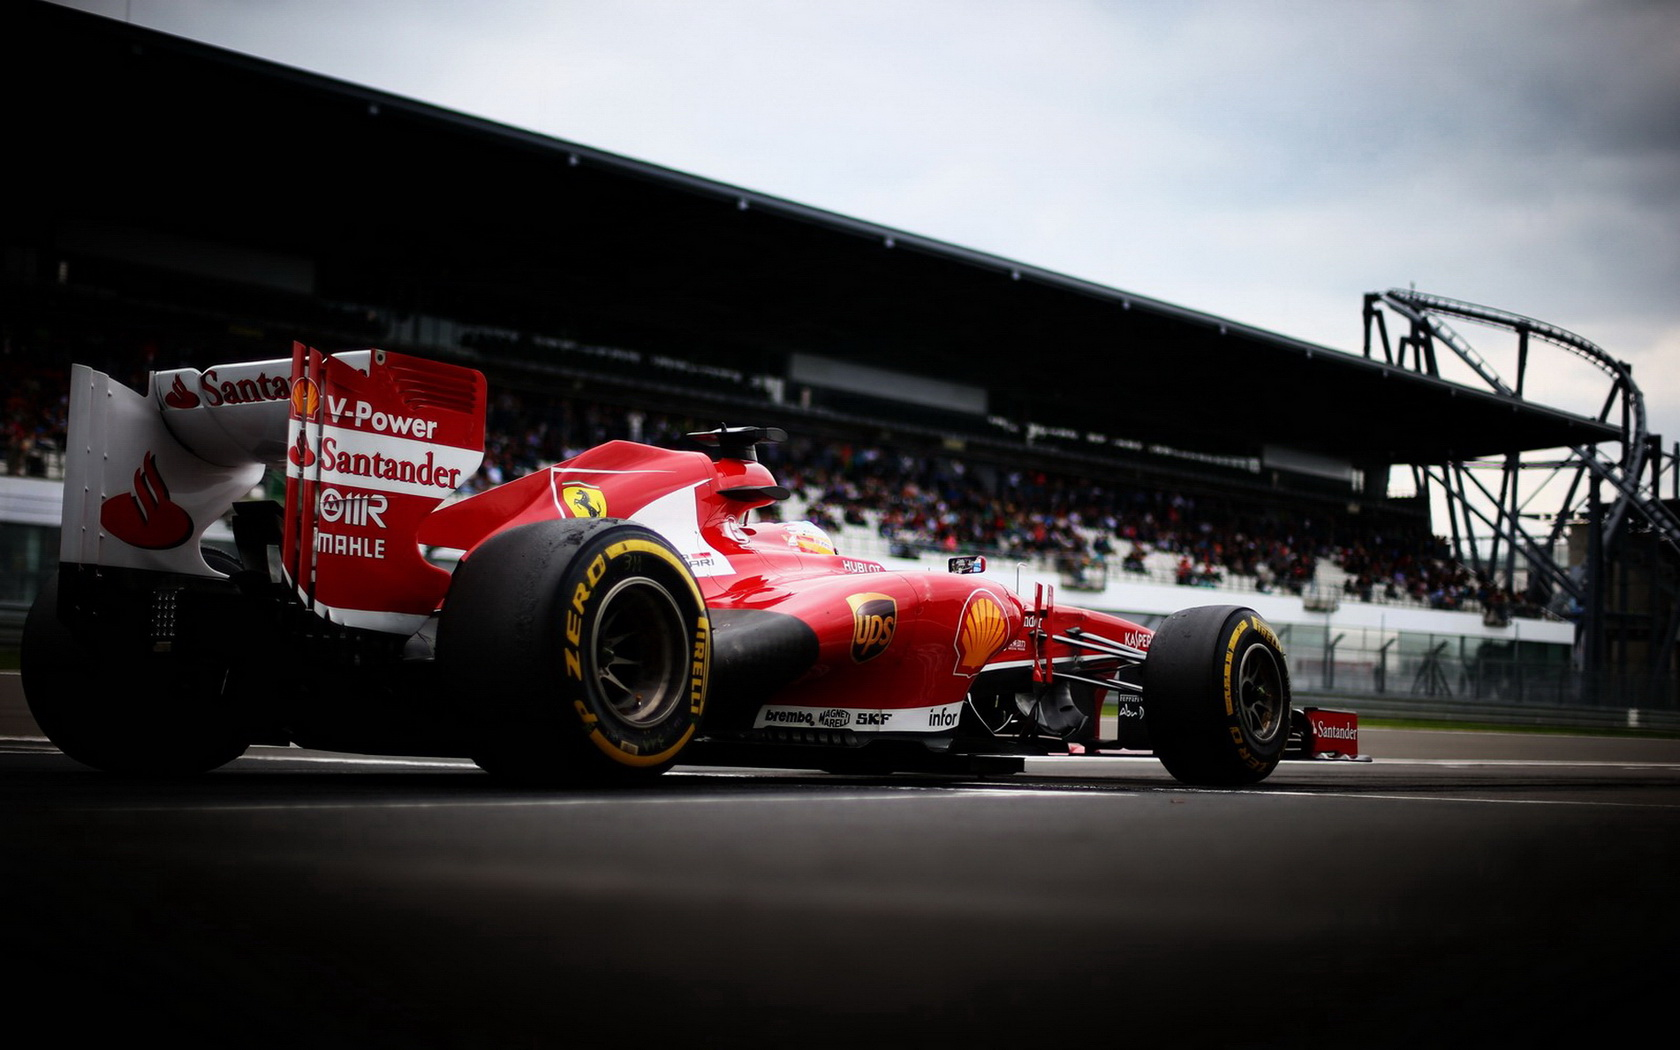 F1 Wallpaper 44514 1680x1050 Px Hdwallsource Com